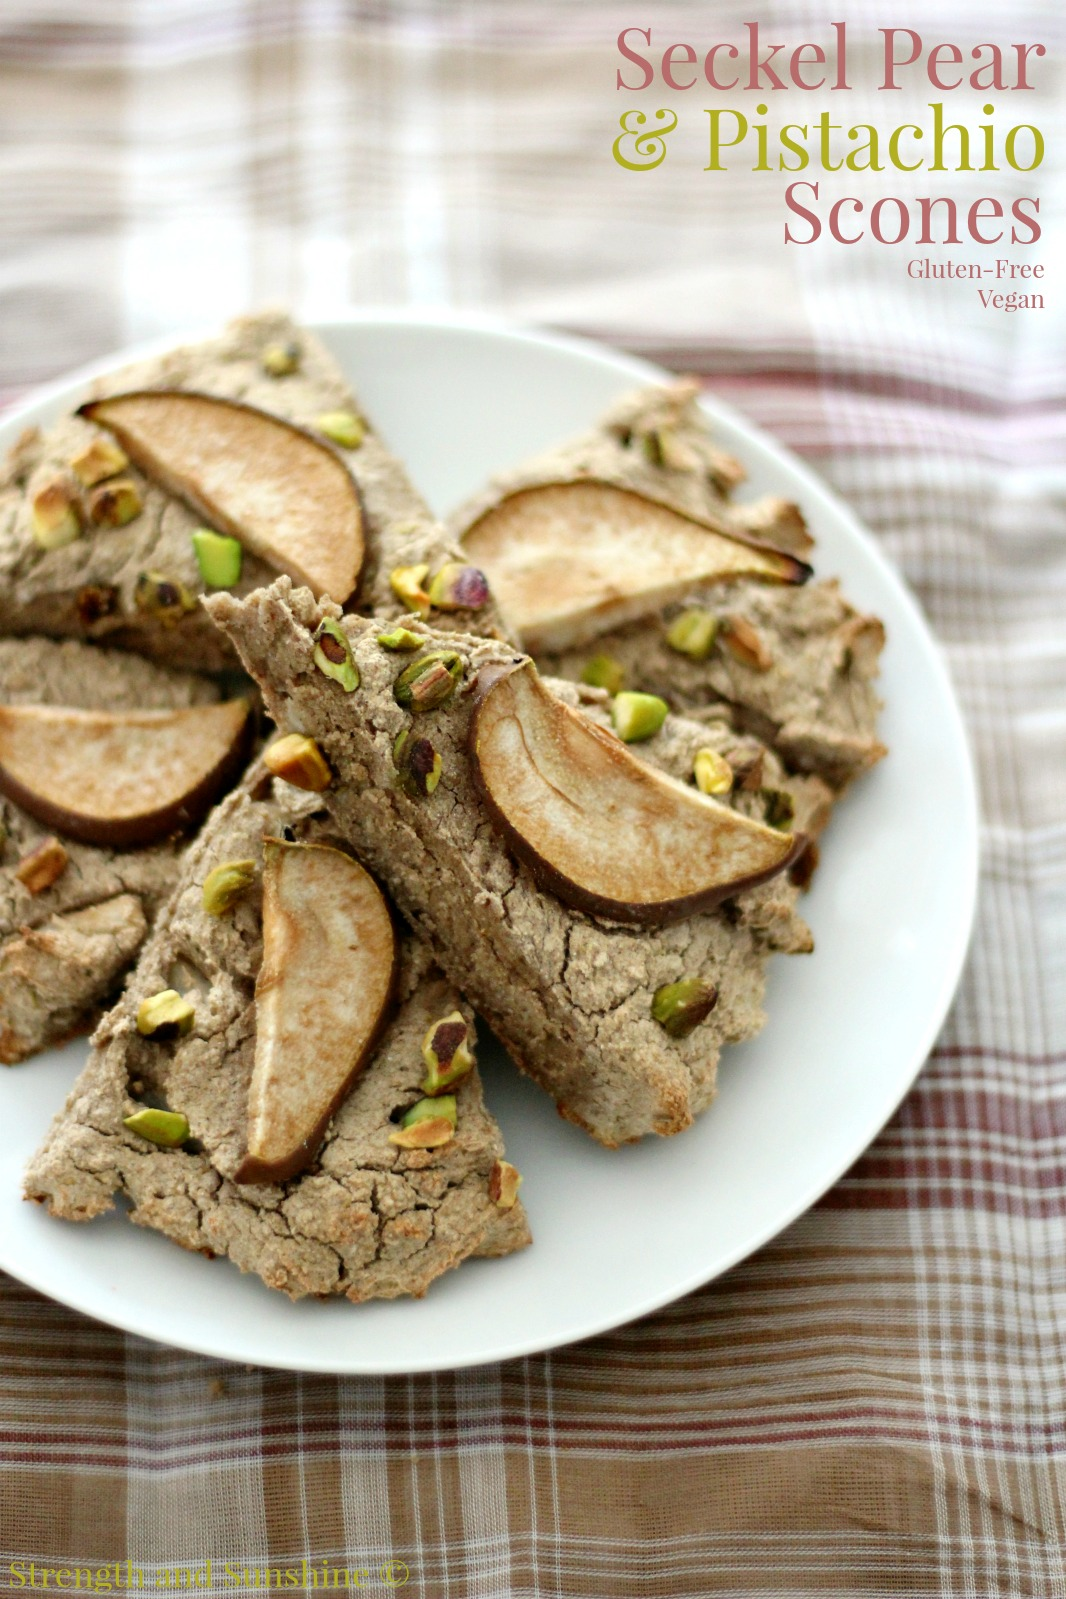 Seckel Pear & Pistachios Scones | Strength and Sunshine @RebeccaGF666 Lovely whole grain gluten-free vegan scones for an elegant winter breakfast or brunch. Seckel pear & pistachio scones are perfect paired with a warm mug of coffee or tea.